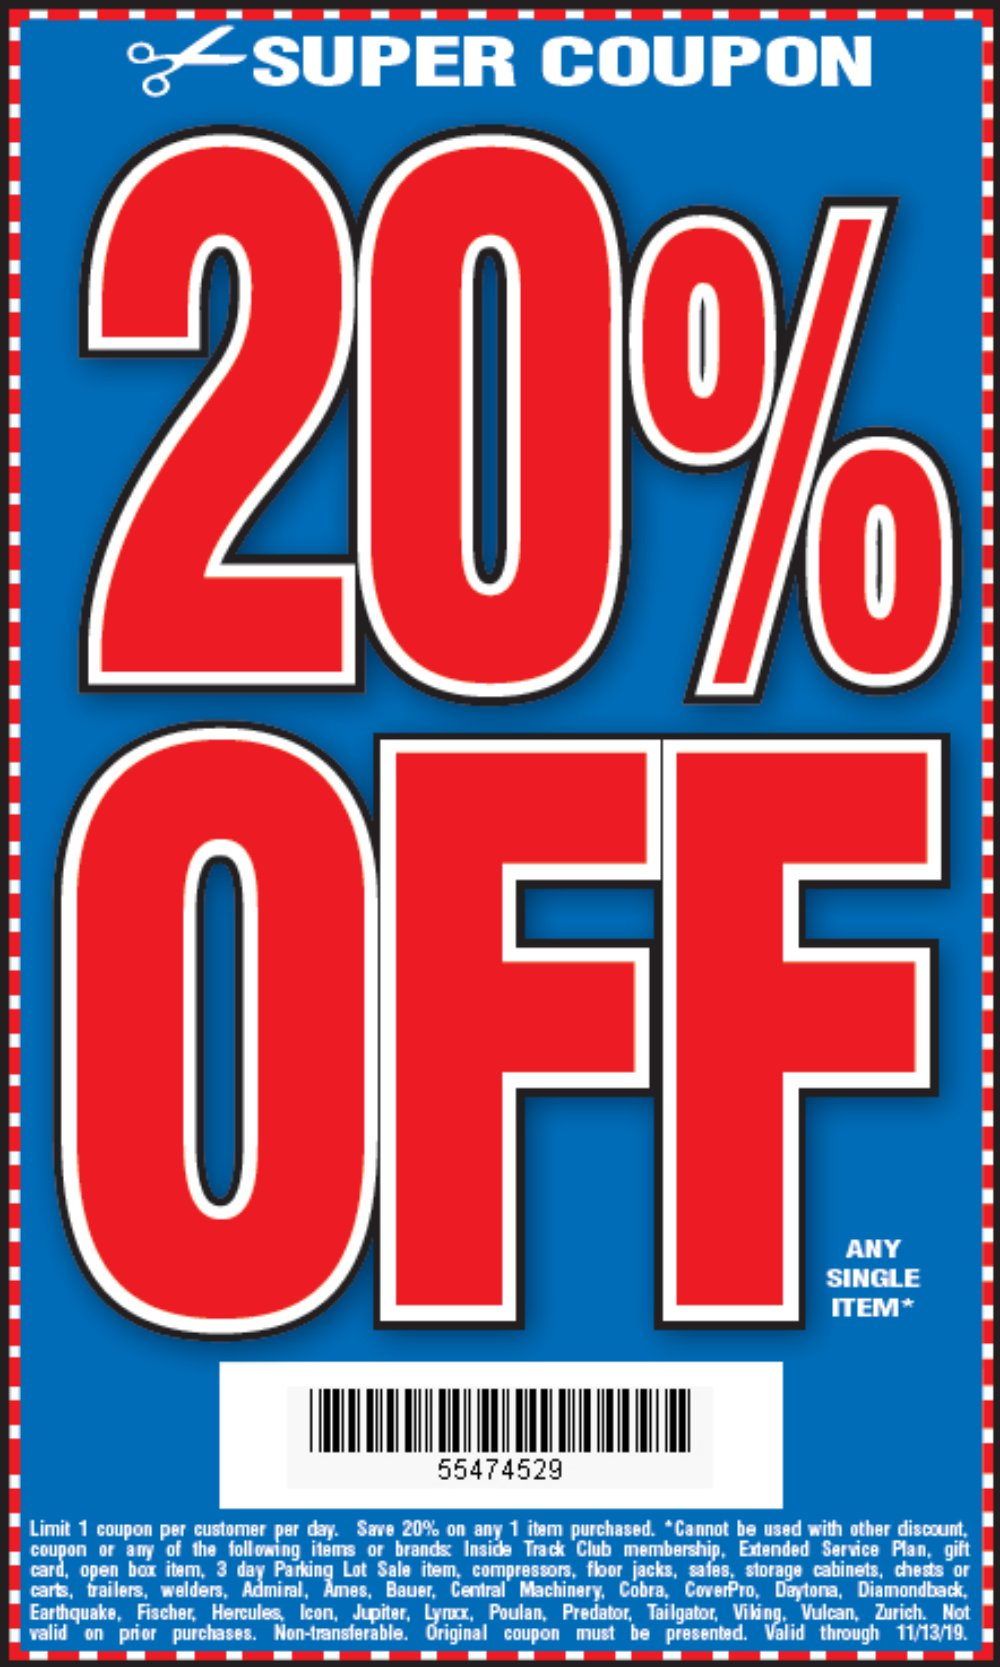 Harbor Freight Coupon, HF Coupons - 20 Percent Off Any Single Item